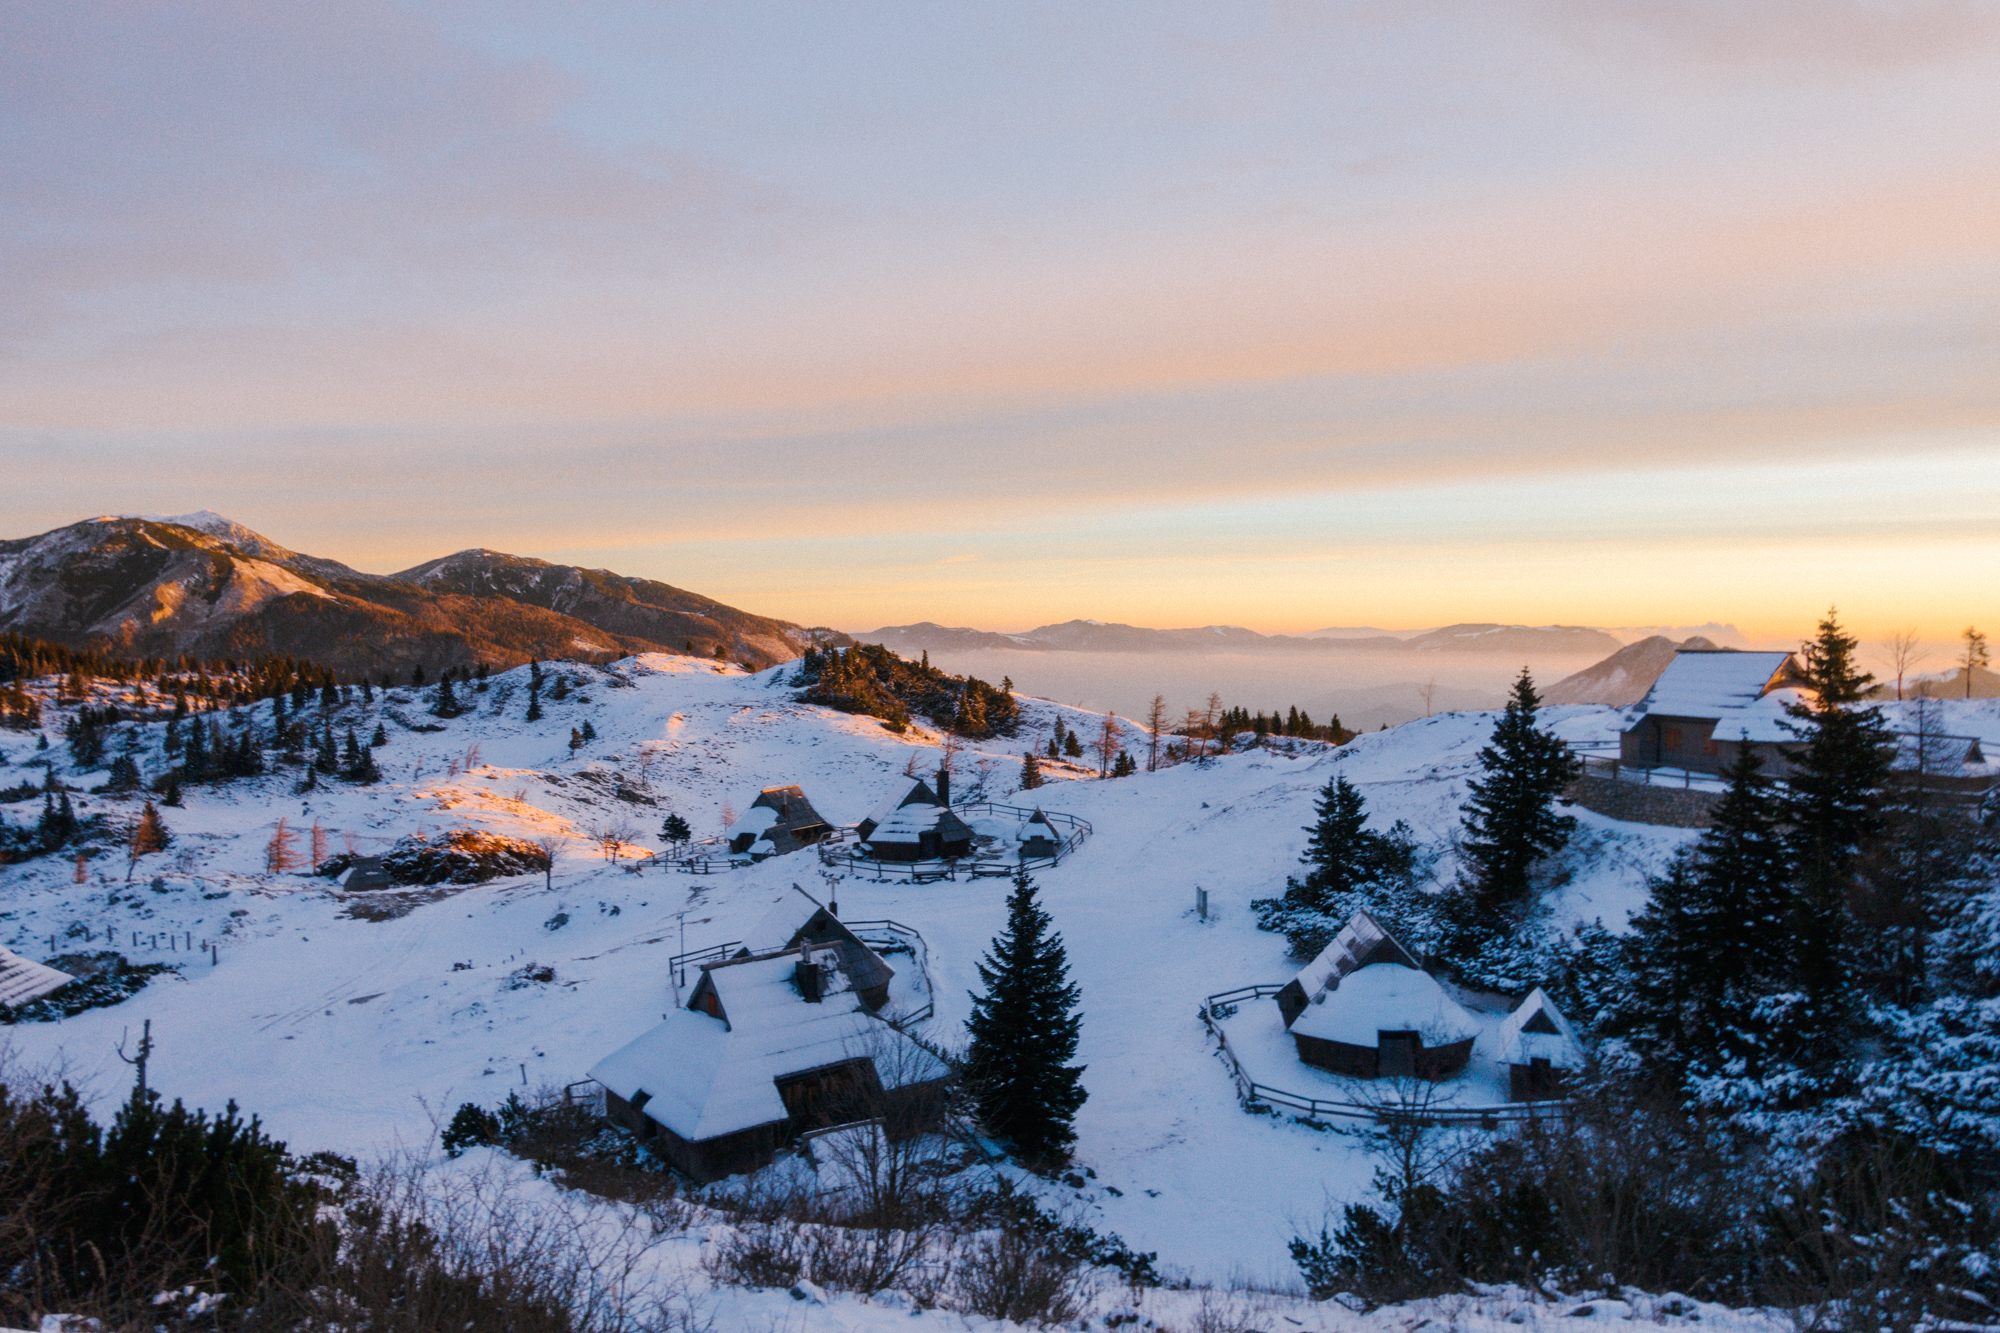 Velika Planina for sunrise in the winter, snow, Visit Ljubljana, Slovenia